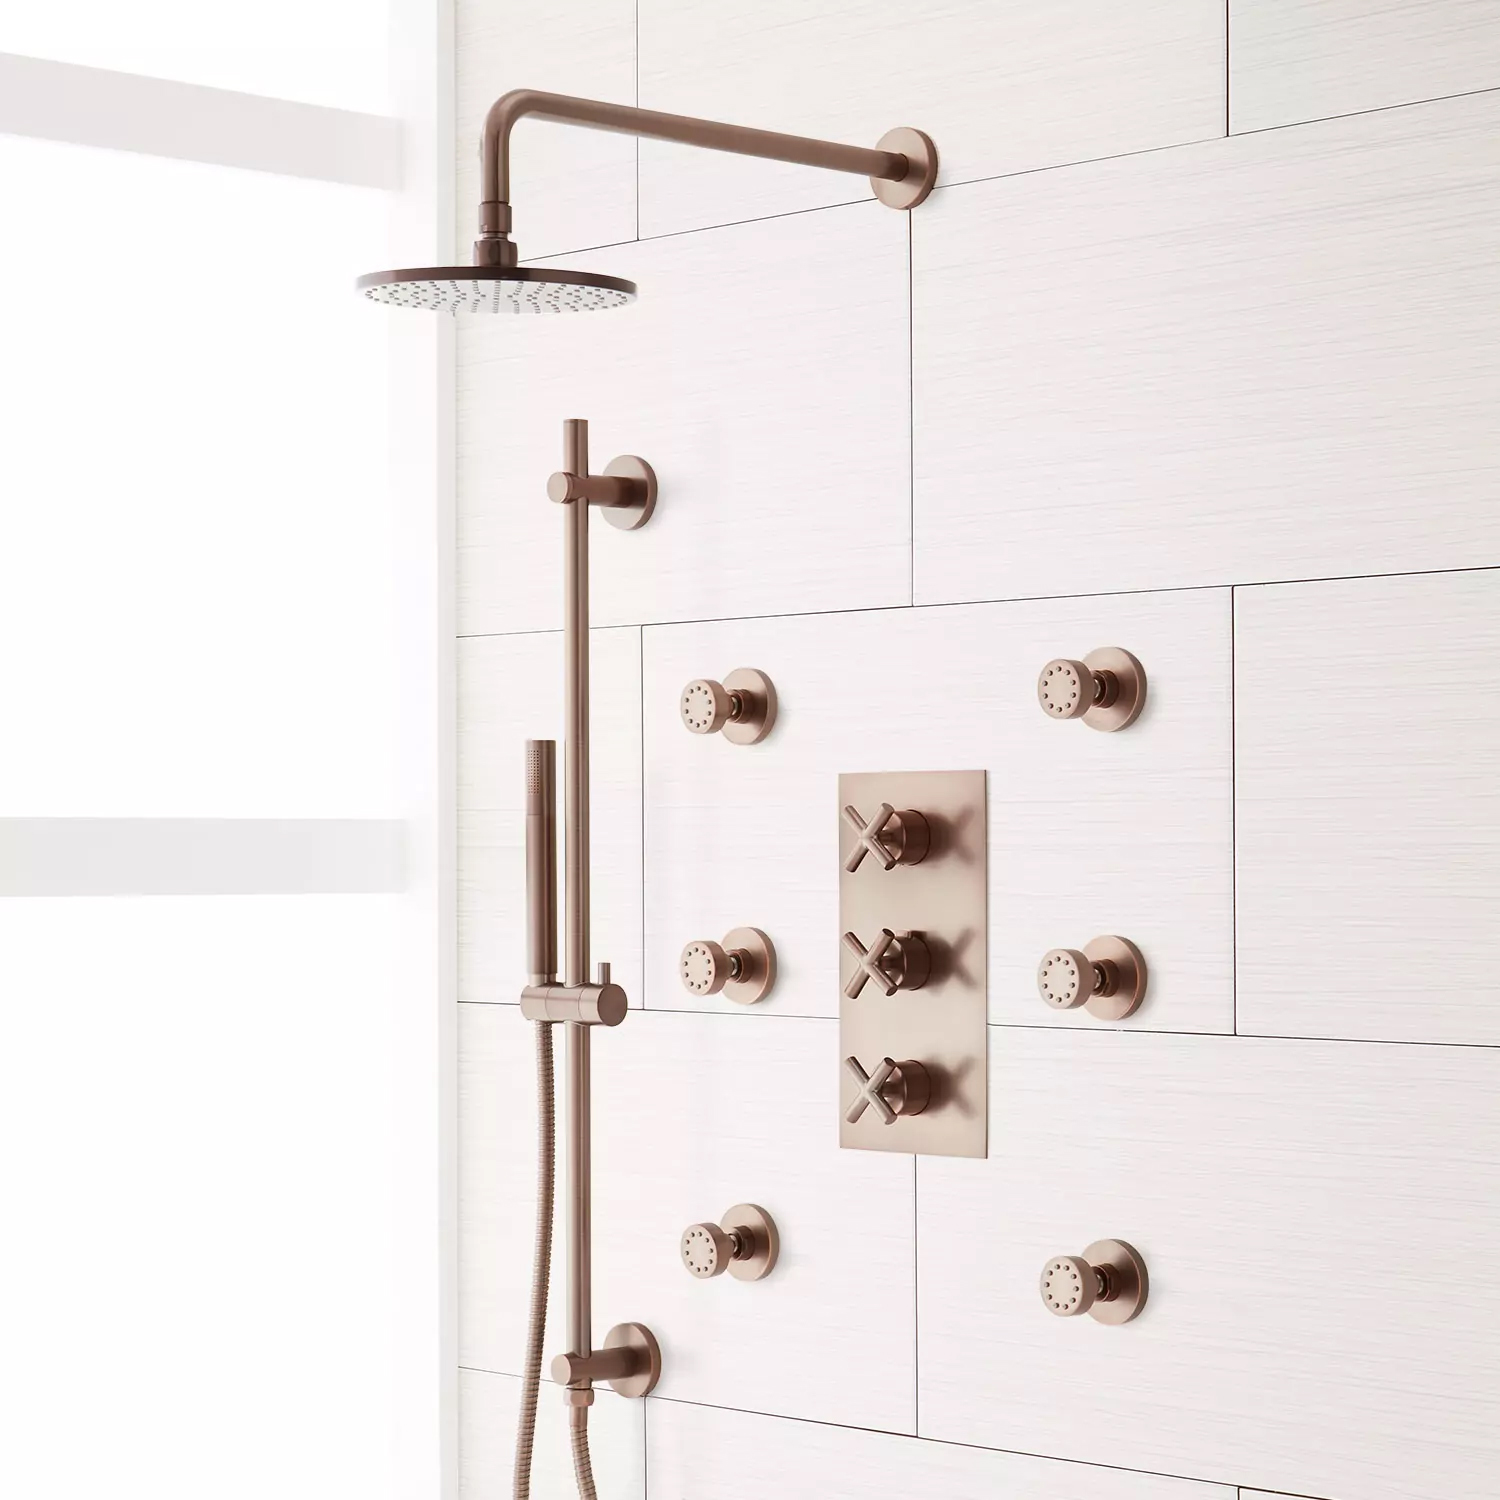 Fontana Perlude Oil Rubbed Bronze Thermostatic Shower System